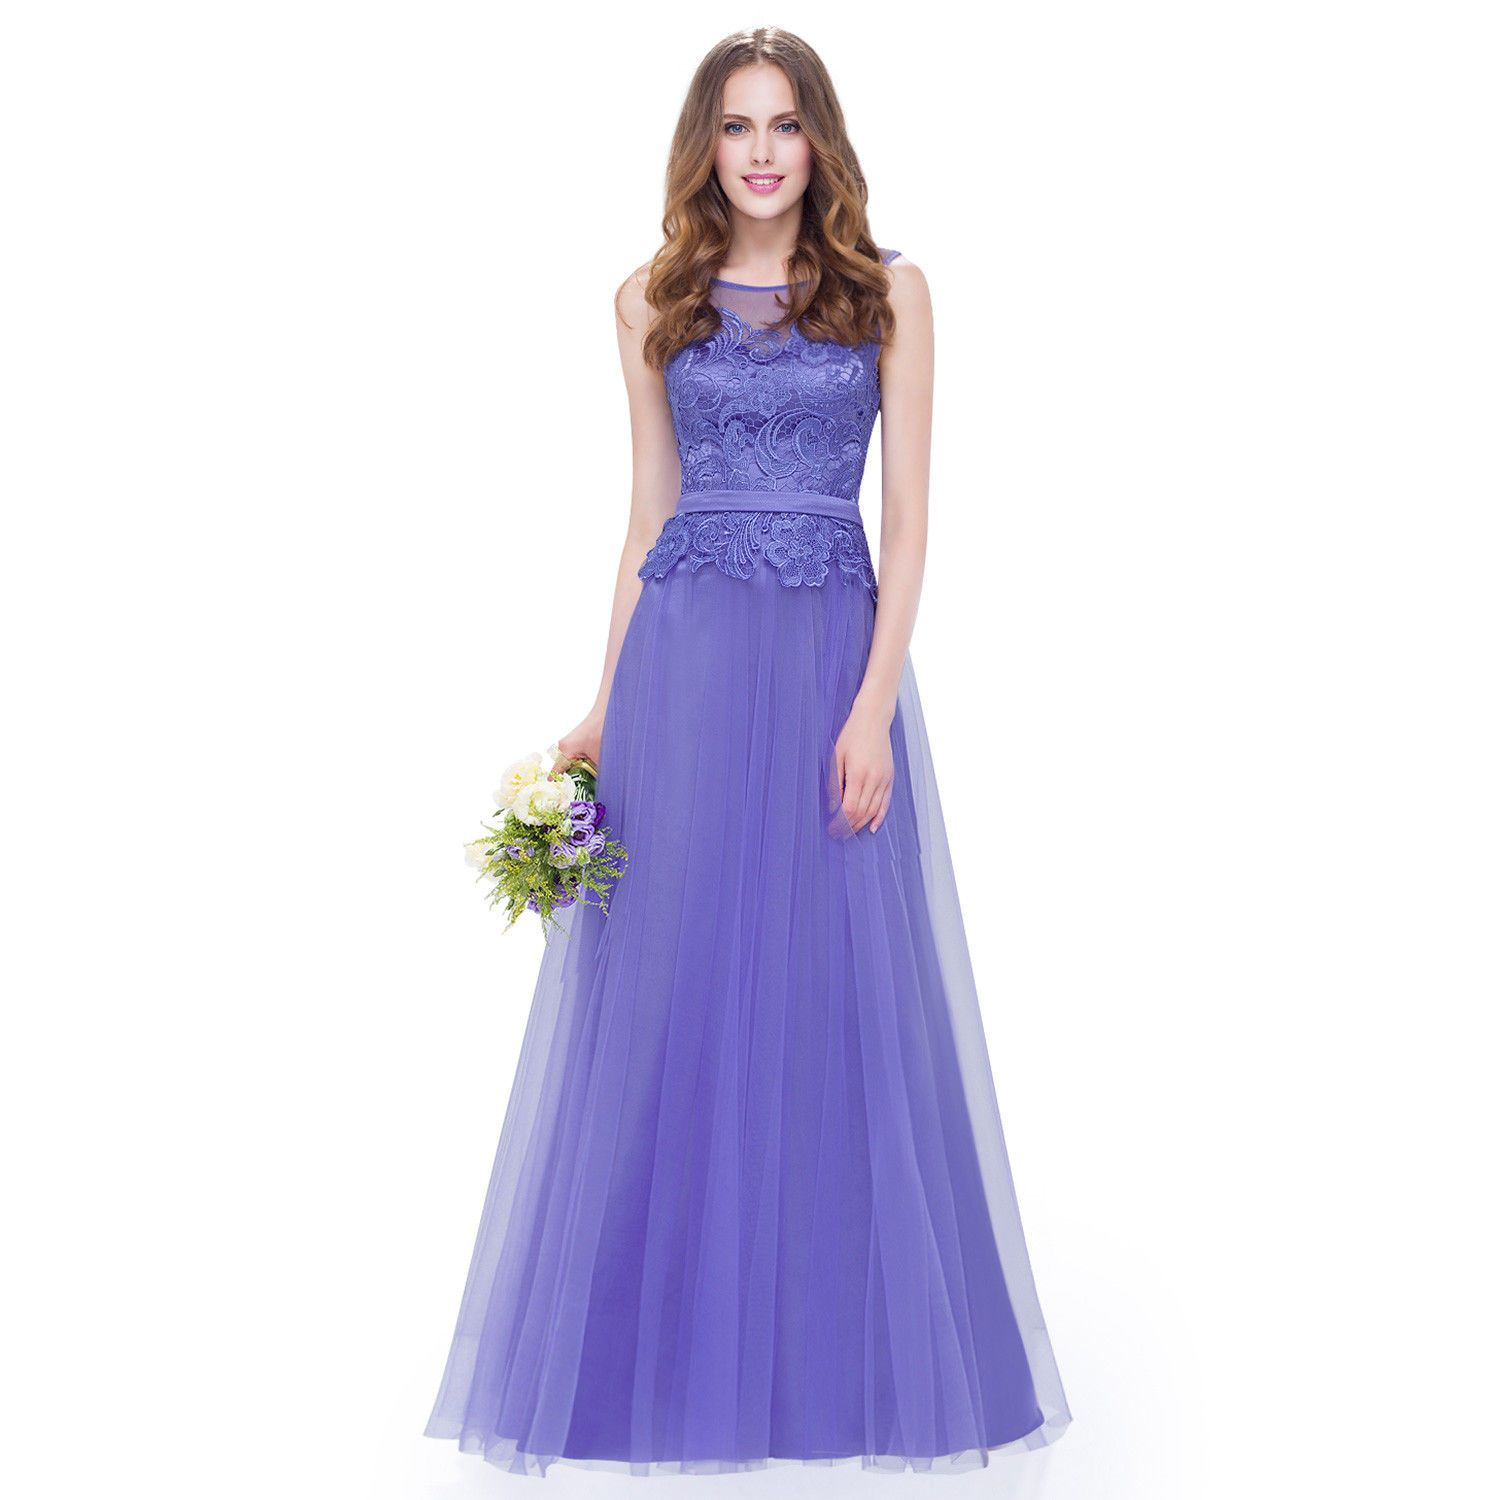 Cool amazing everpretty long evening prom gown cocktail party